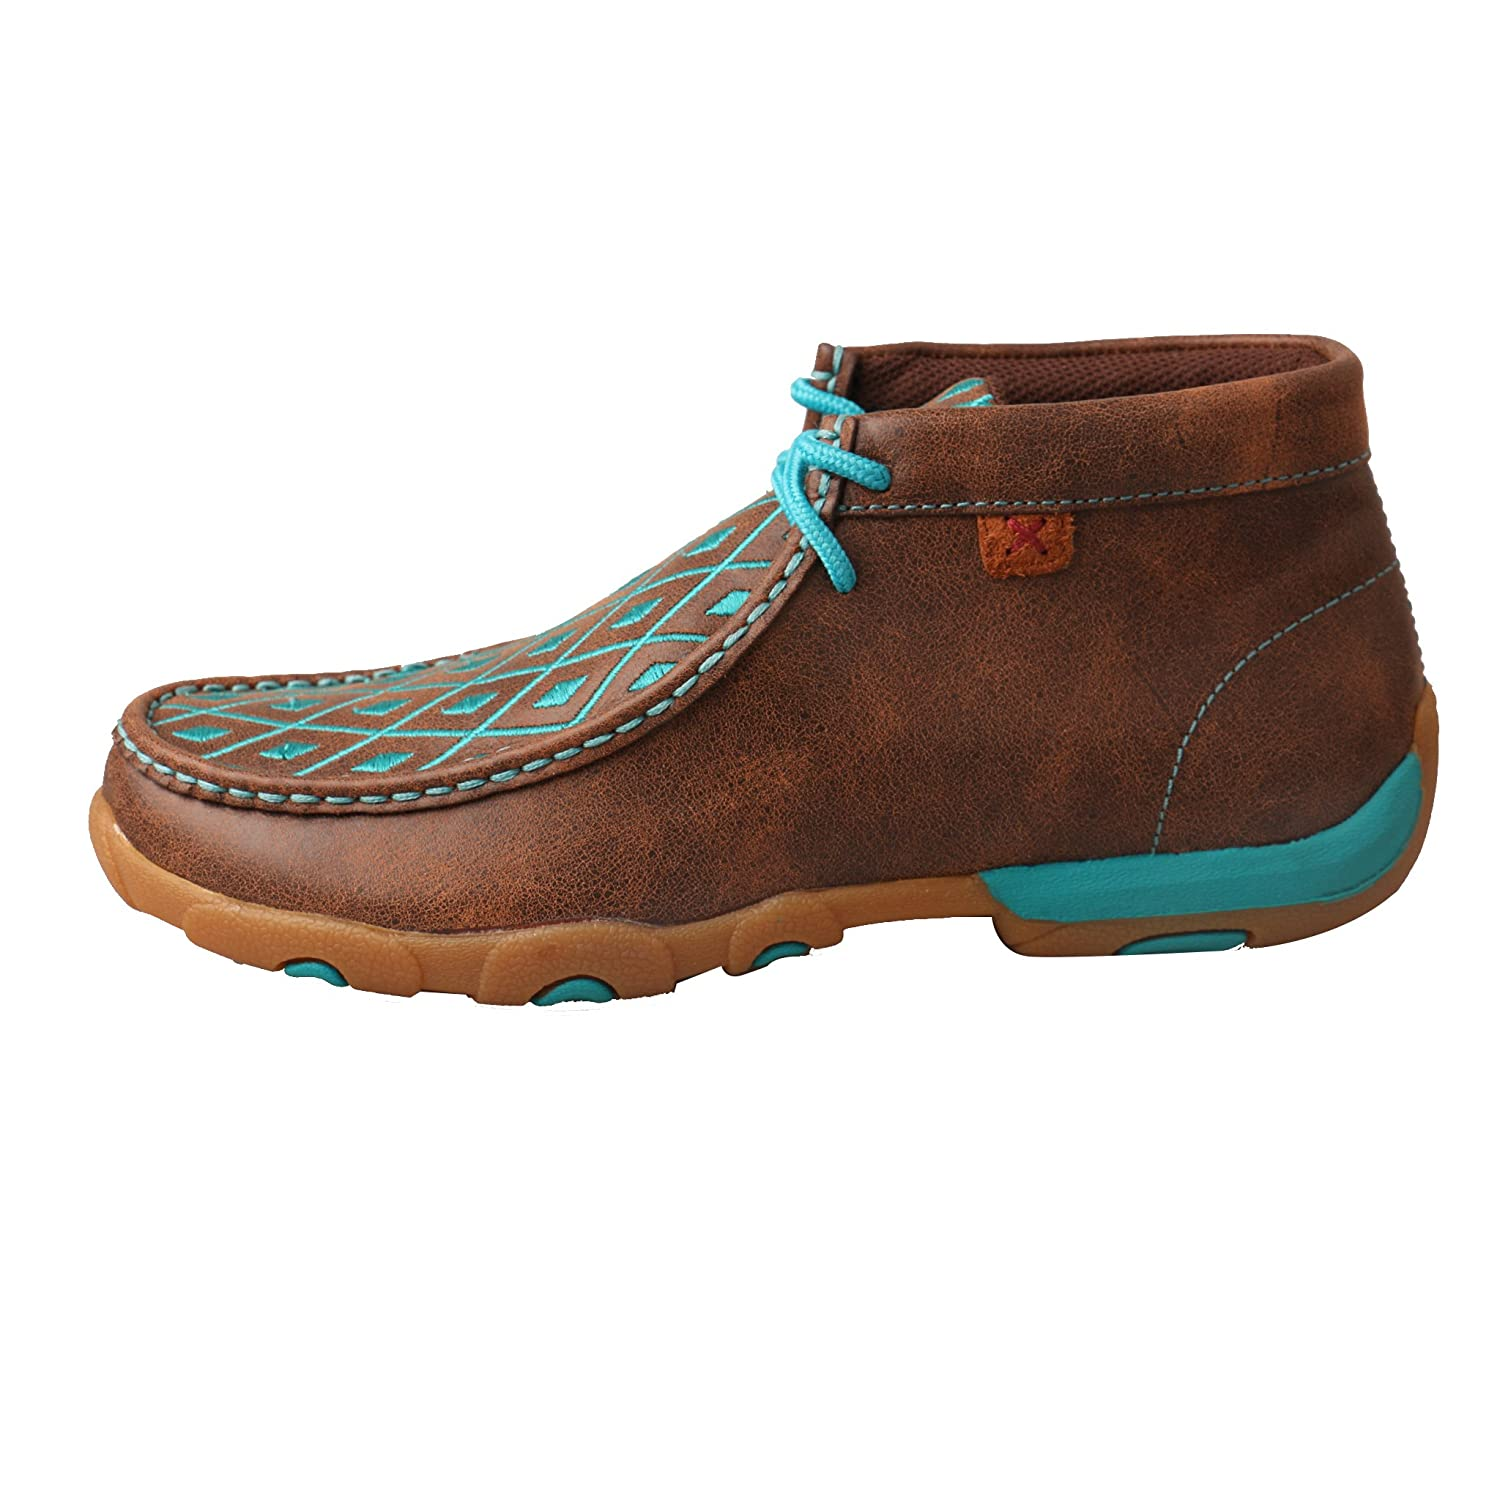 Twisted Rubber X Women's Leather Lace-up Rubber Twisted Sole Driving Moccasins - Brown/Turquoise B075K9F3KD 6.5 B(M) US|Brown/Turquoise f5ae76